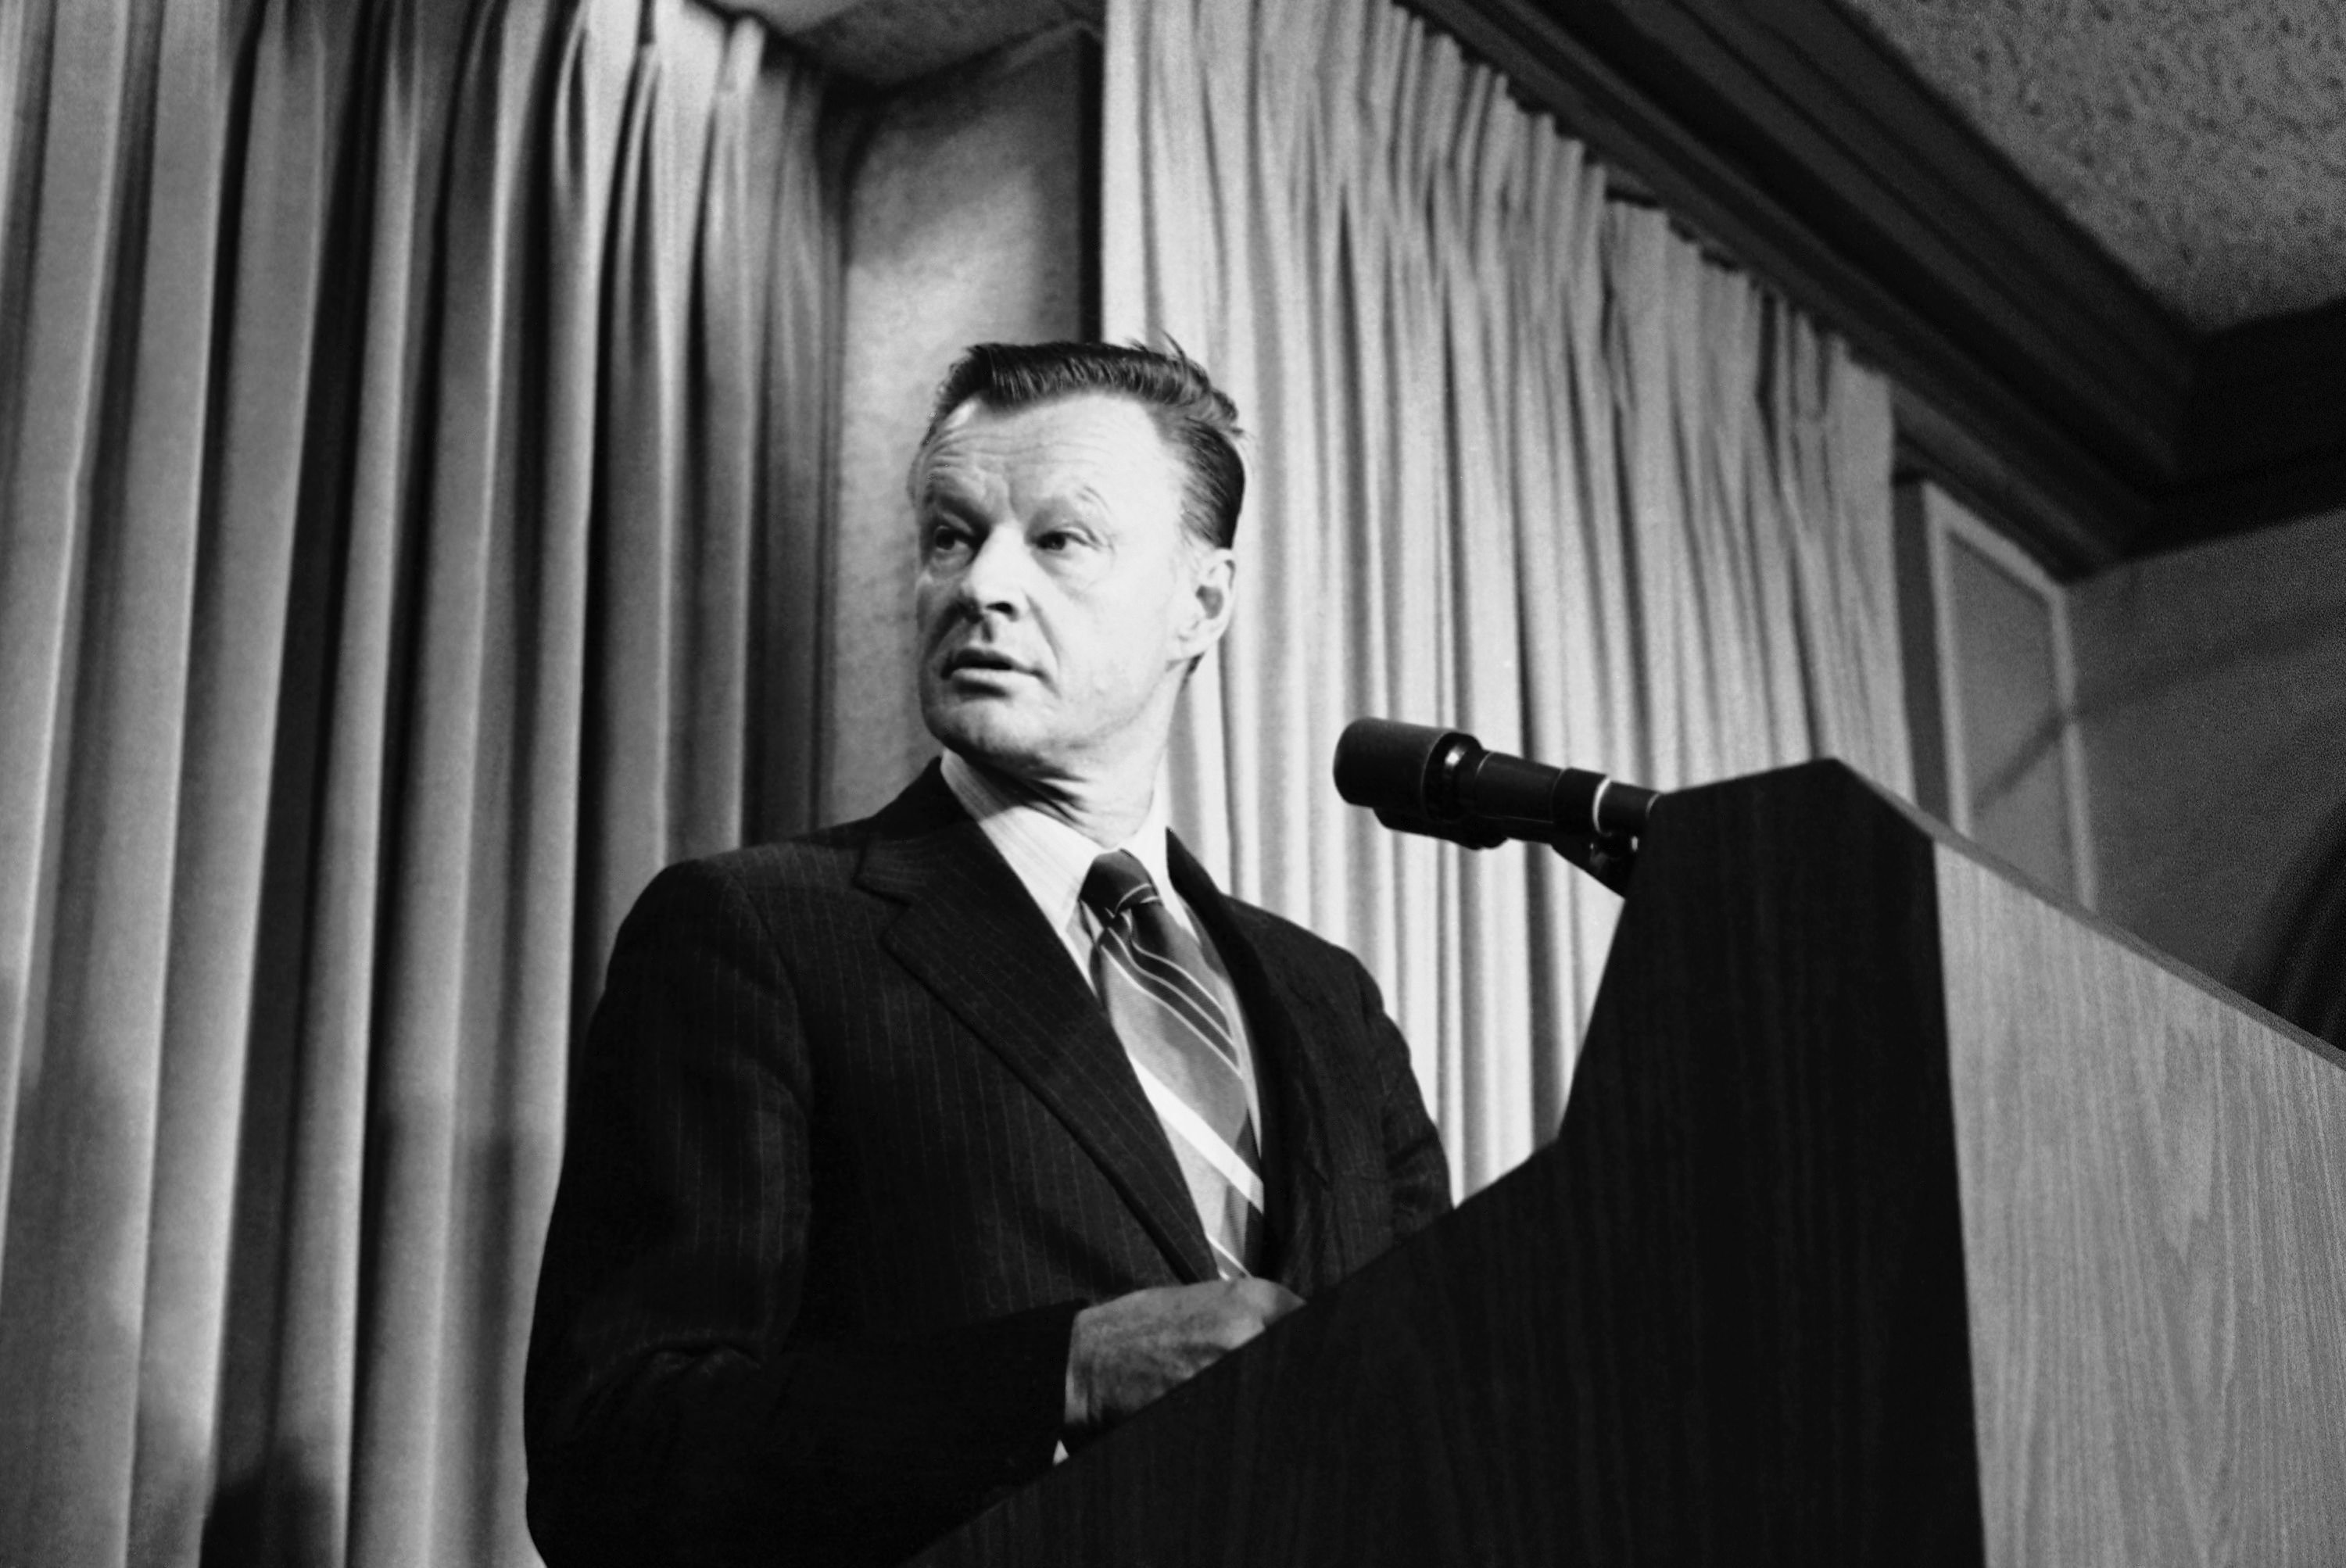 © AP Photo/ Tasnadi National Security Affairs Adviser Zbigniew Brzezinski tells a Washington news briefing in Washington,, Friday, May 11, 1979 that President Carter and Soviet President Leonid Brezhnev will meet from June 15 to 18 in Vienna to sign their new Salt II treaty